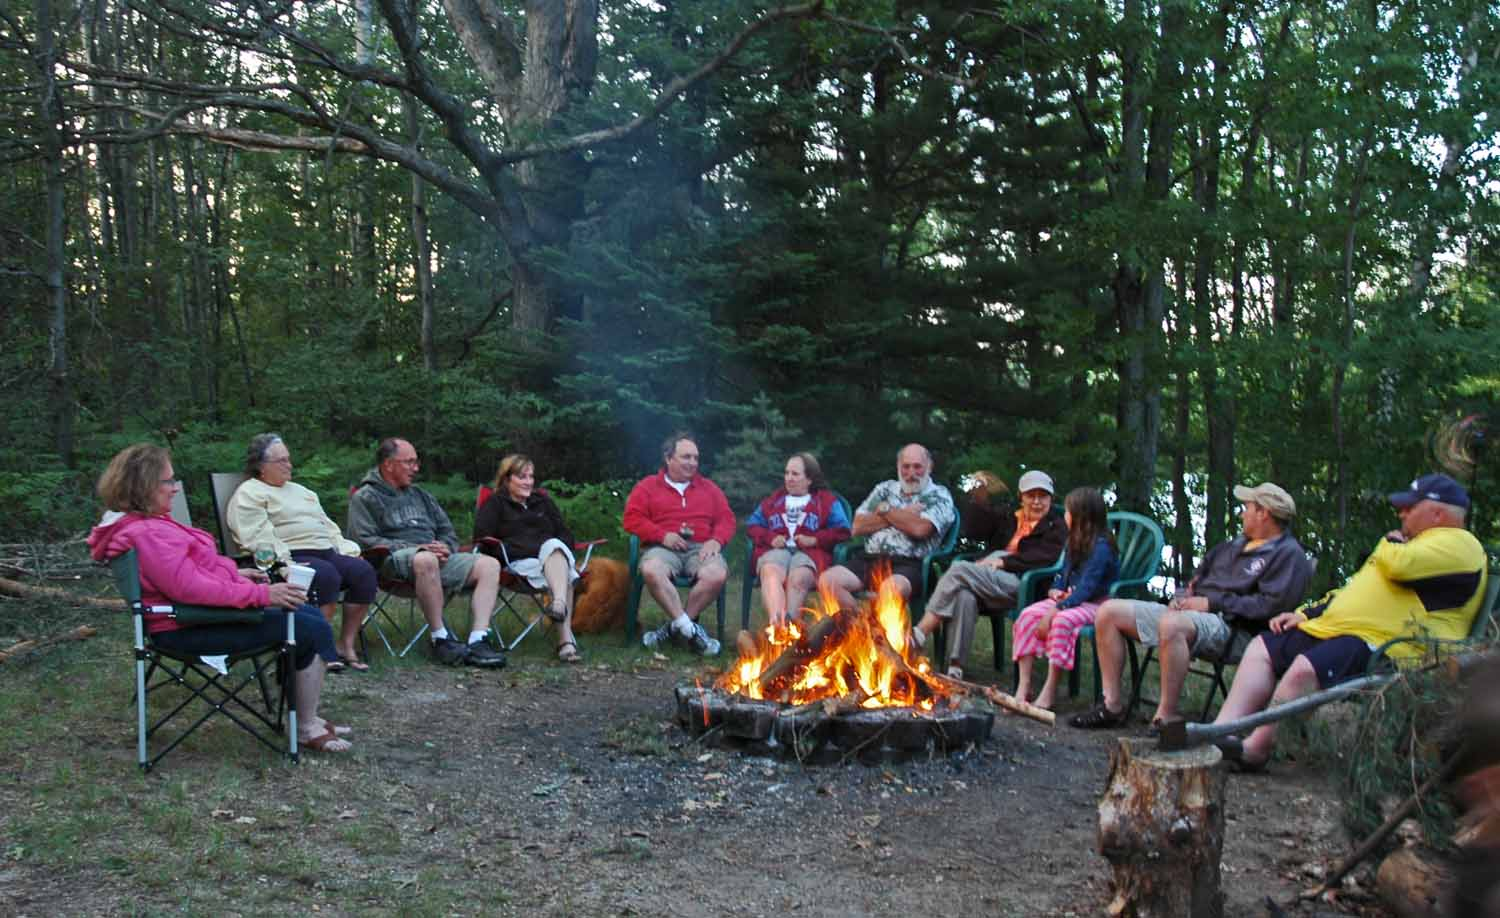 Snyder campfire the last night - Sister Marilyn far left